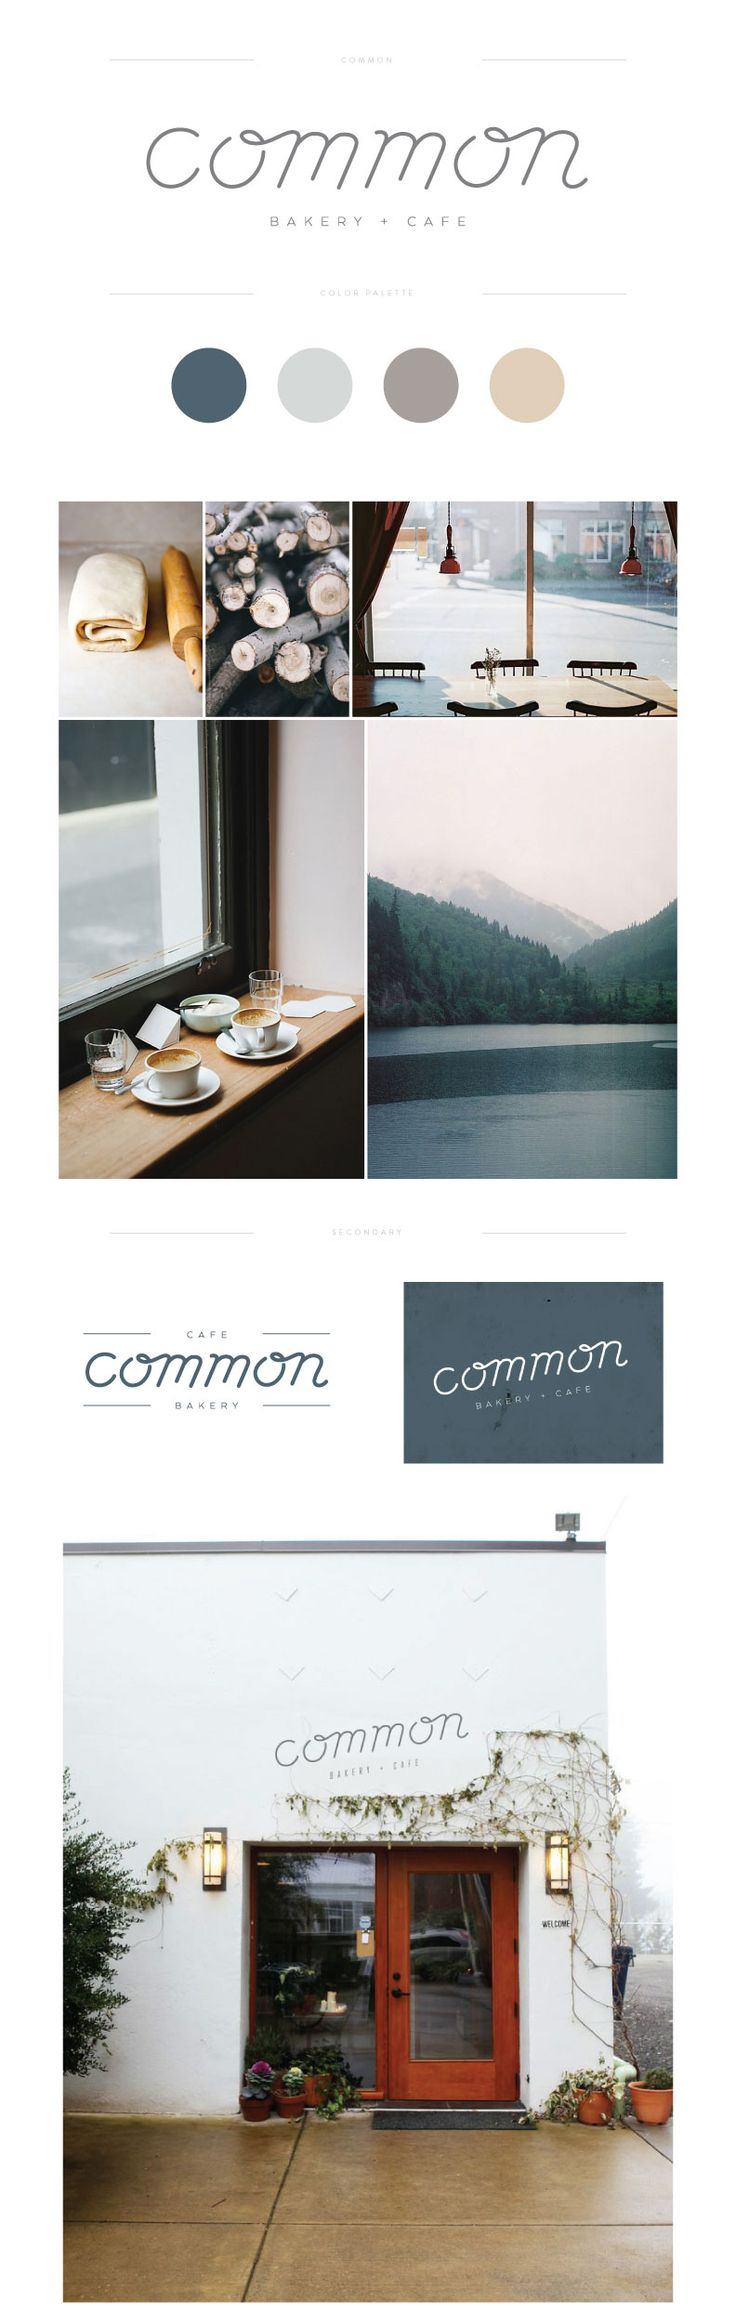 Lauren Ledbetter Design & Styling — Common Cafe + Bakery